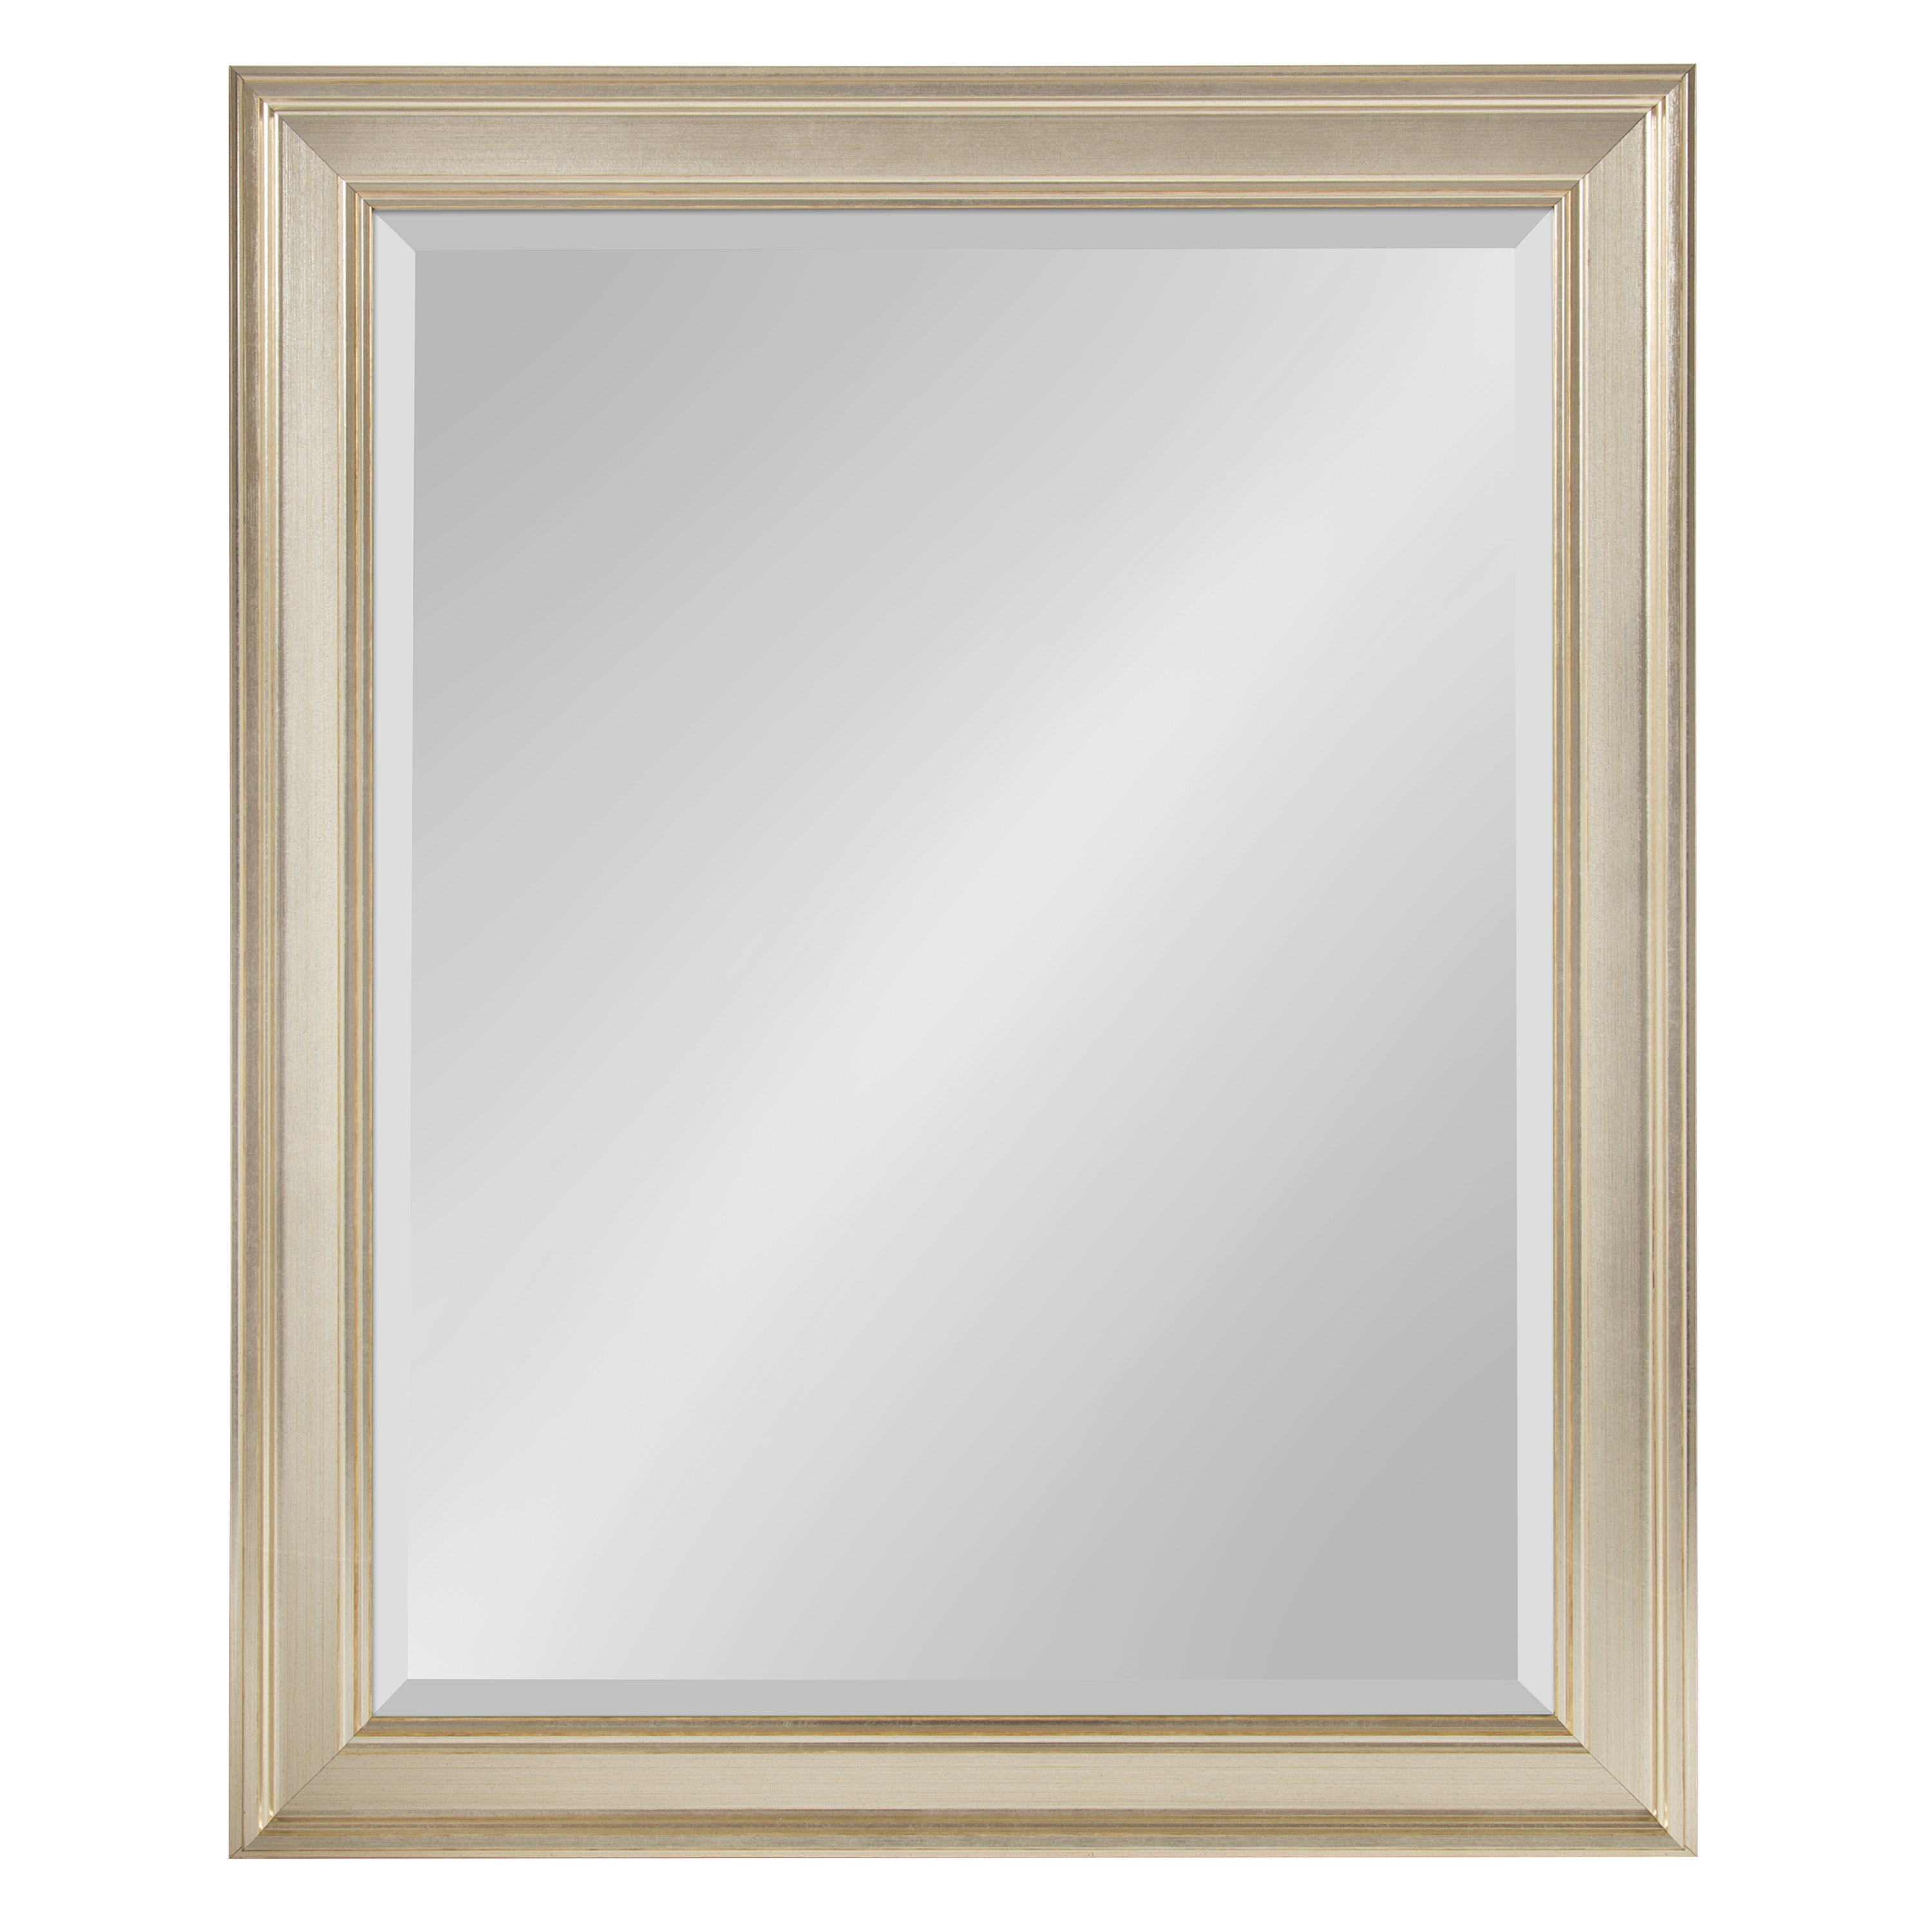 Salter Framed Rectangle Accent Mirror Throughout Northcutt Accent Mirrors (Image 14 of 20)